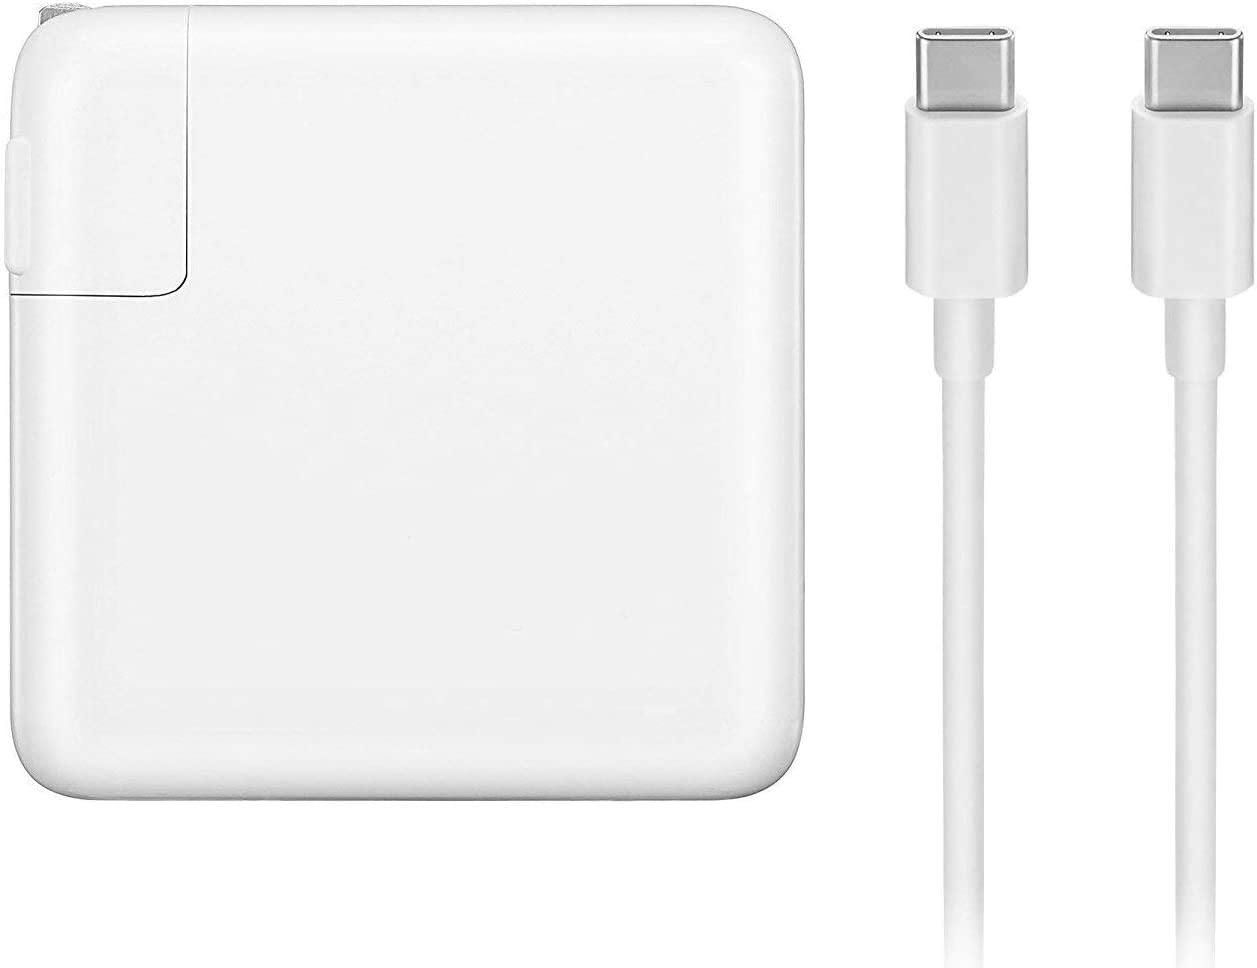 87W USB-C Power Adapter Charger, with USB-C Charging Cable-6.56 Ft